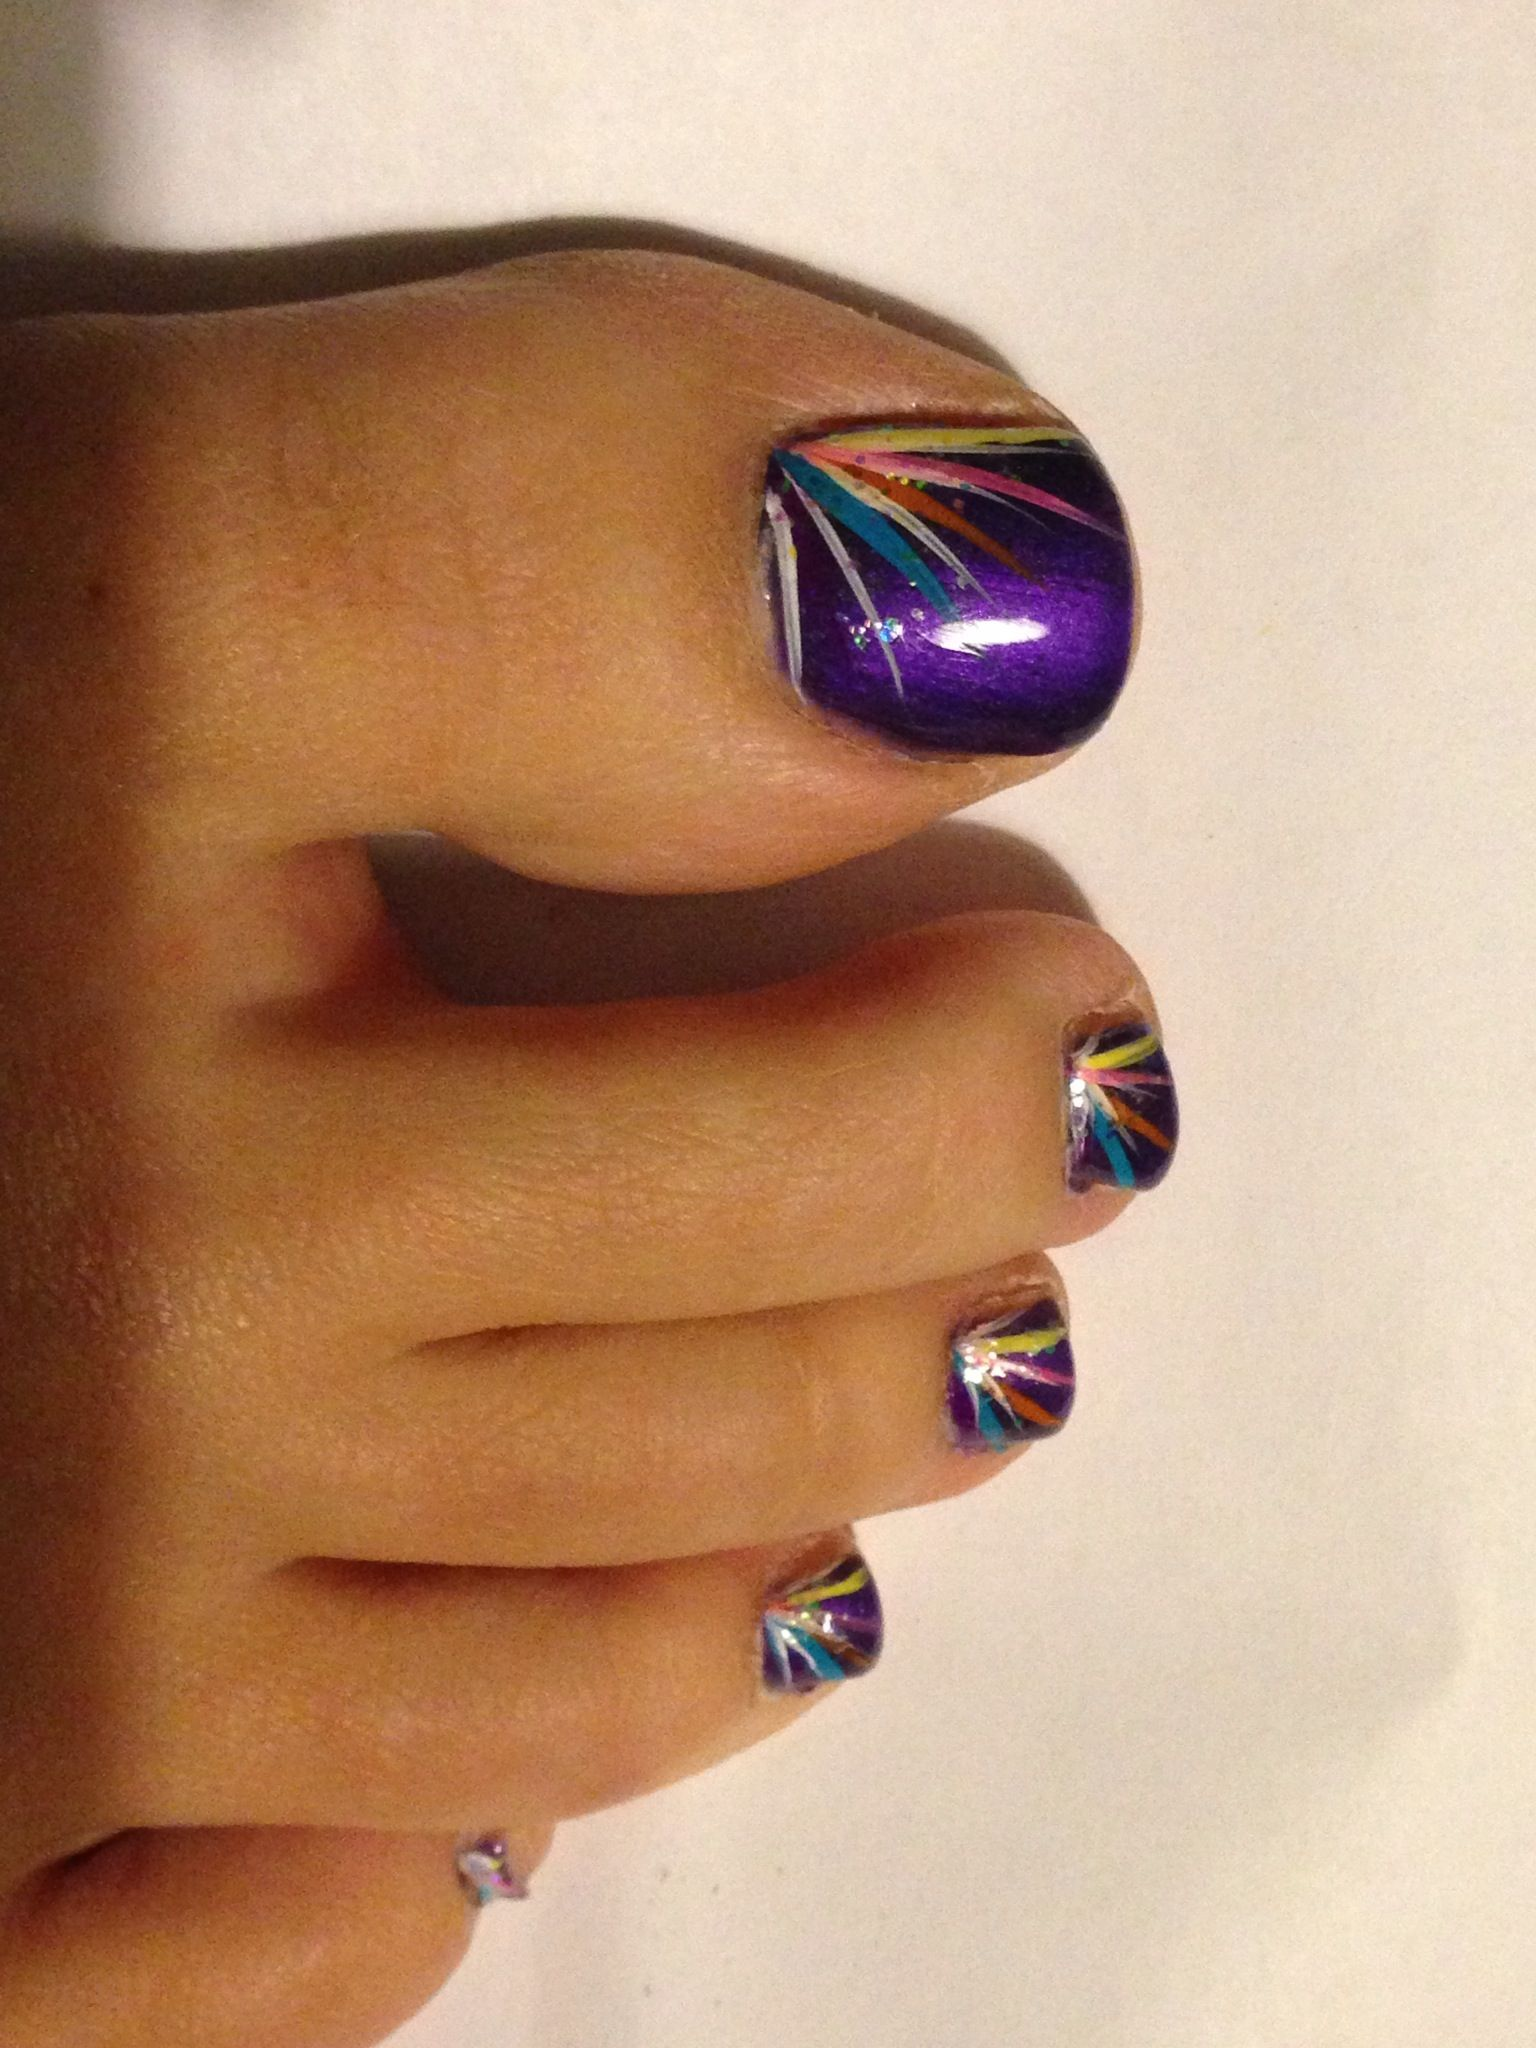 someone who does their toes more than their fingers,